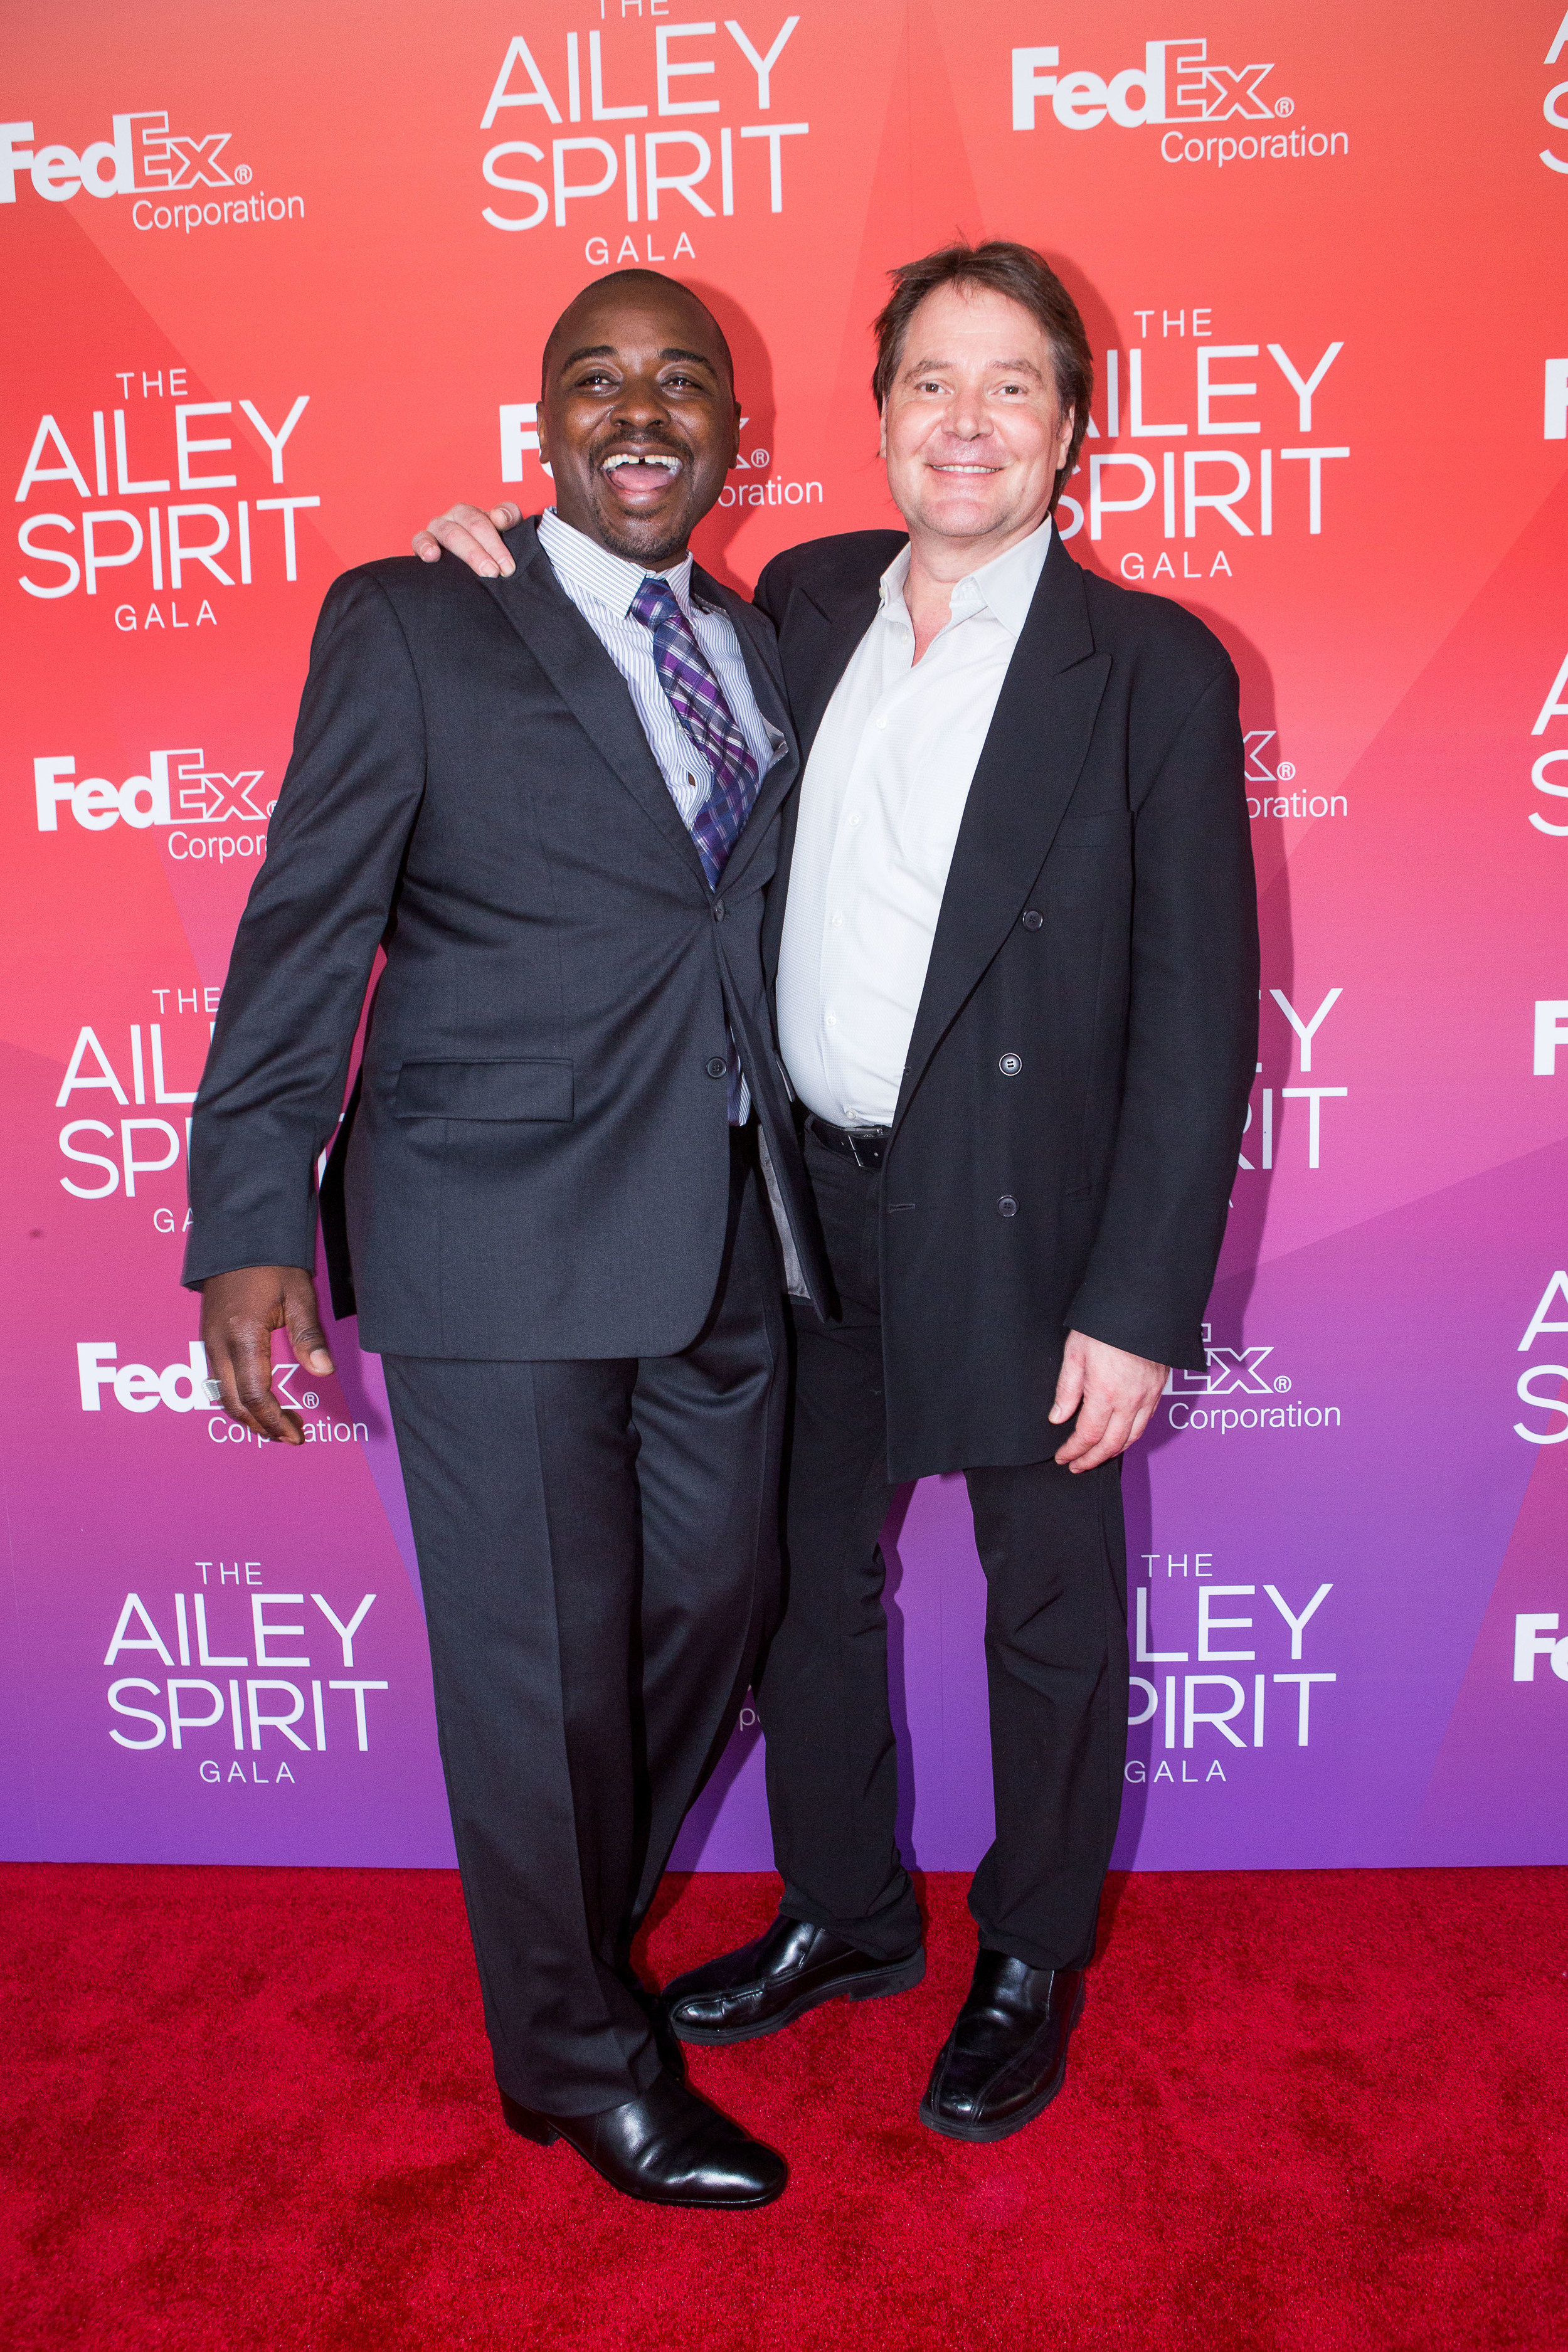 Alvin Ailey American Dance Theater Artistic Director Robert Battle and David Parsons at the 2014 Ailey Sprit Gala at Lincoln Center.  Photo by Dario Calmese Jr.